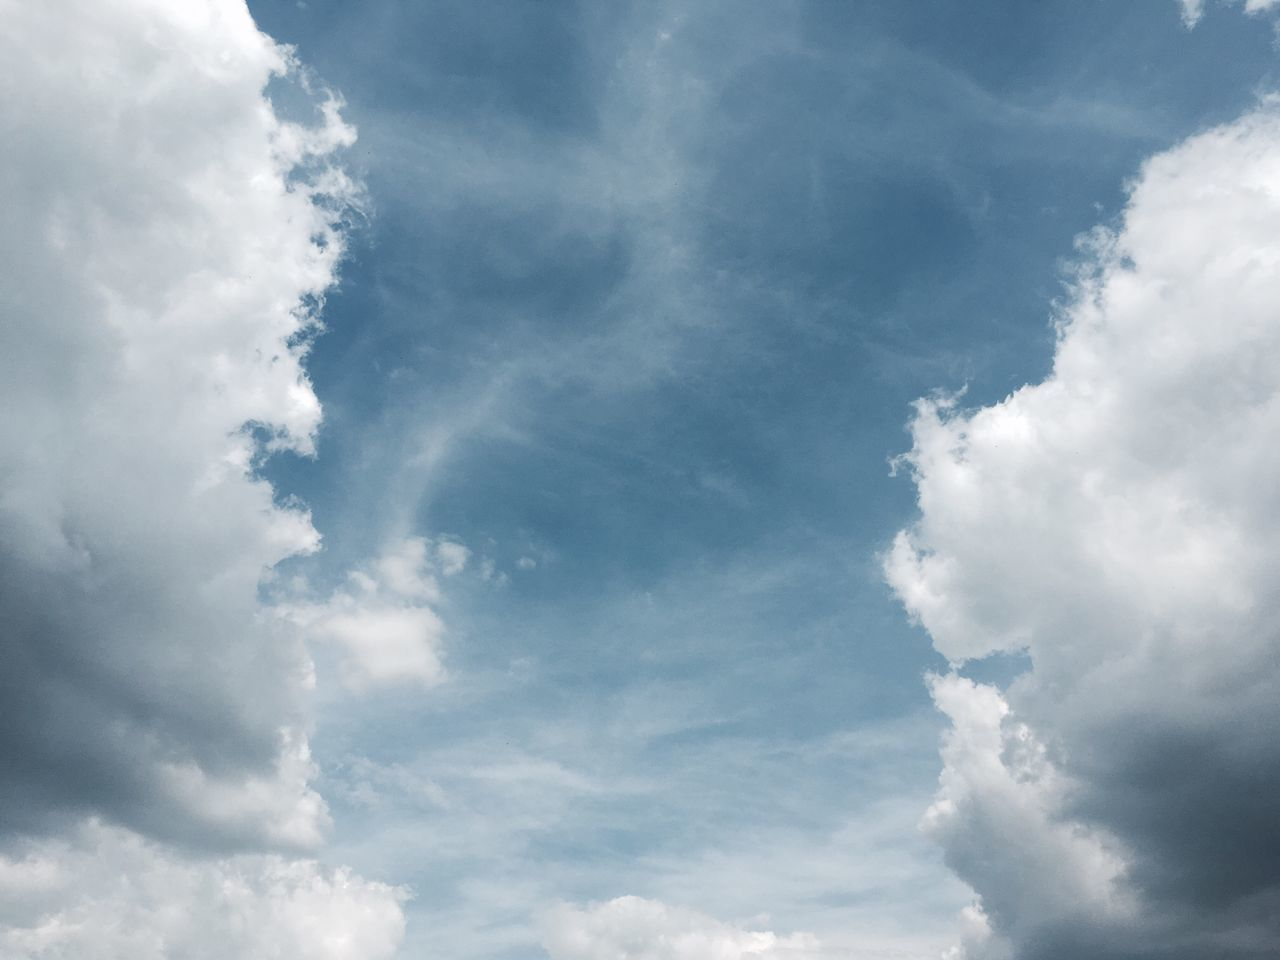 Cloud - Sky Sky Nature Beauty In Nature Low Angle View Backgrounds Sky Only Day No People Full Frame Scenics Outdoors Tranquility